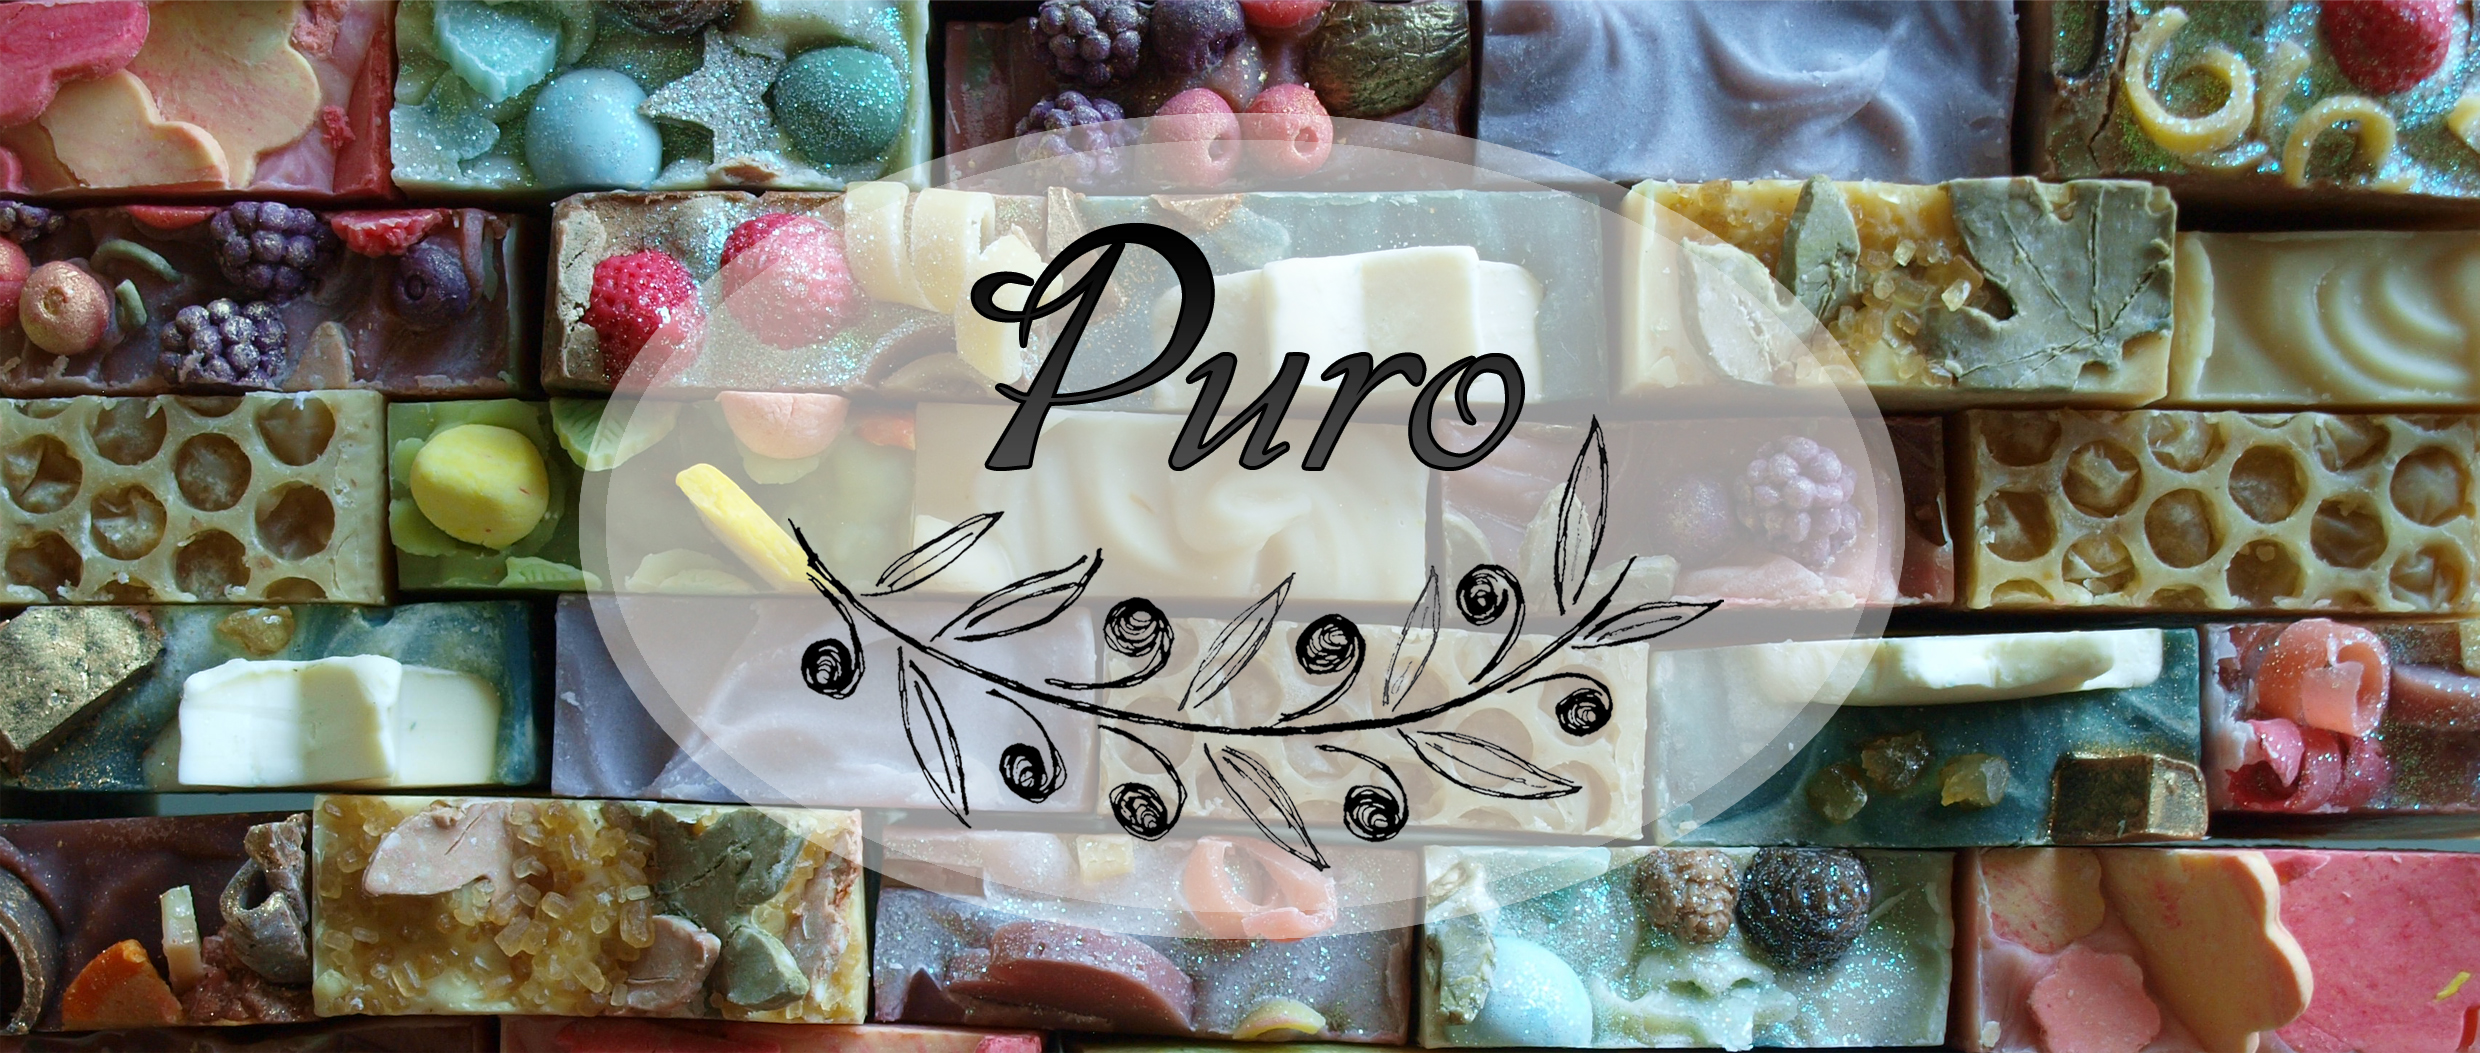 Puro Soap Courses - starting in February 2017 - email info@quintadocobral.com to find out more